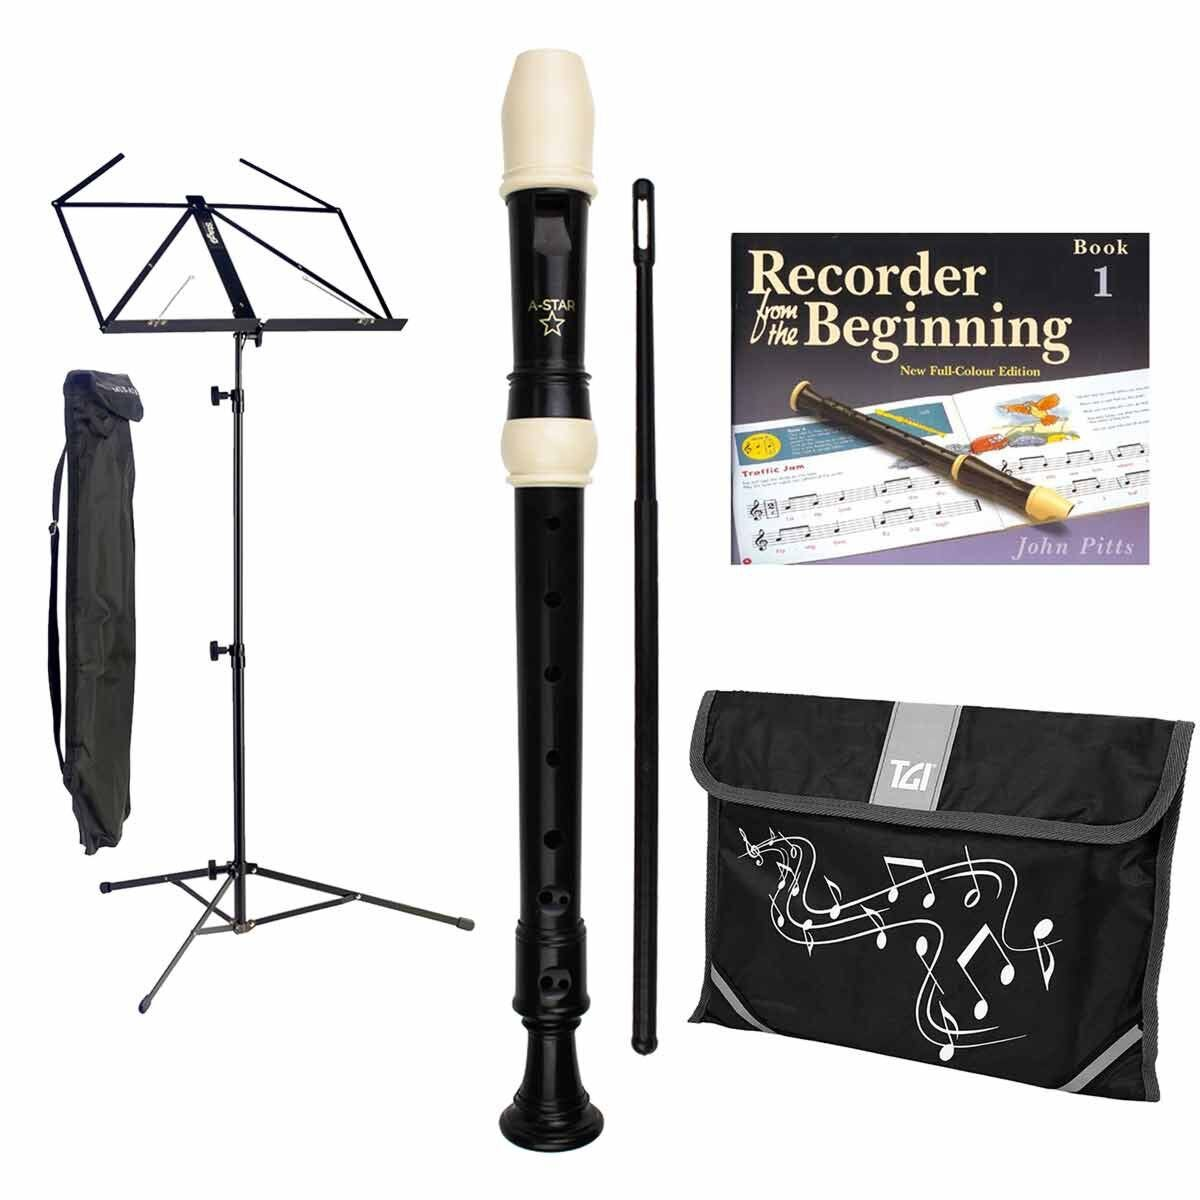 A-Star Recorder Starter Pack with Bookstand and Bag